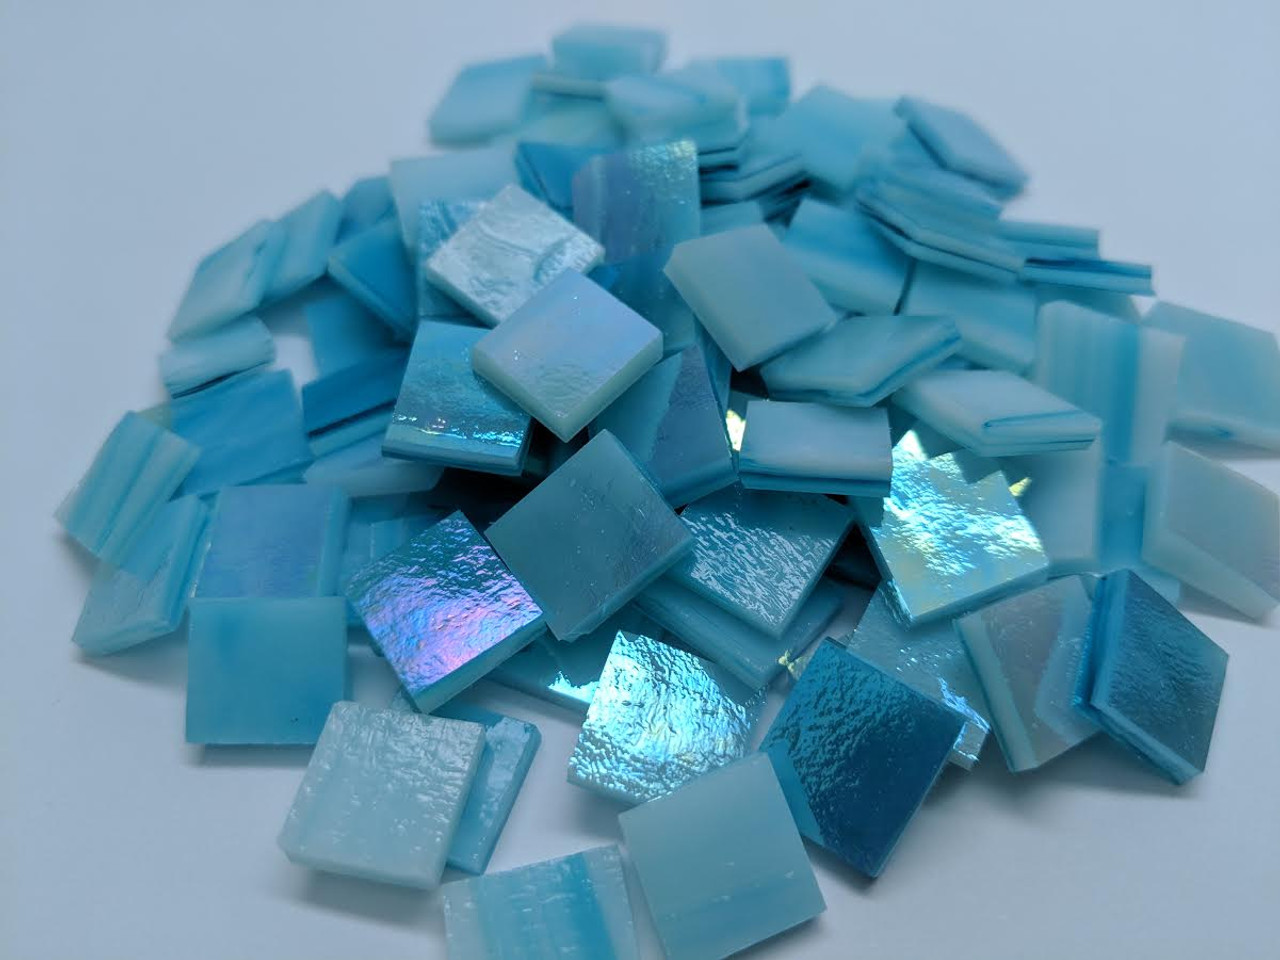 Sky Blue Opal Iridescent Stained Glass Mosaic Tiles